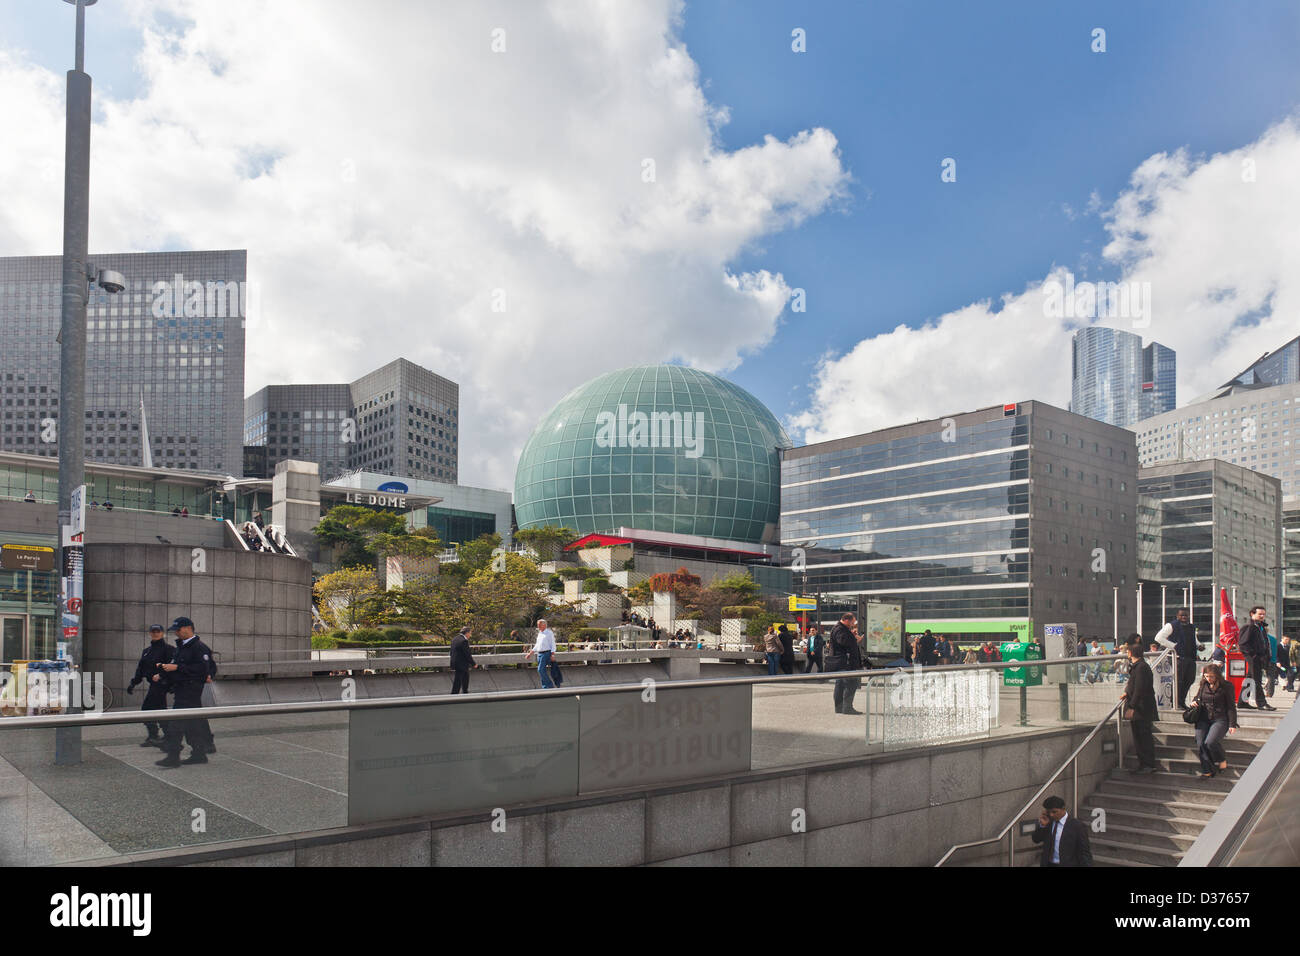 Part of La Défense, the business area of Paris which also has dining and entertainment facilities, such as - Stock Image